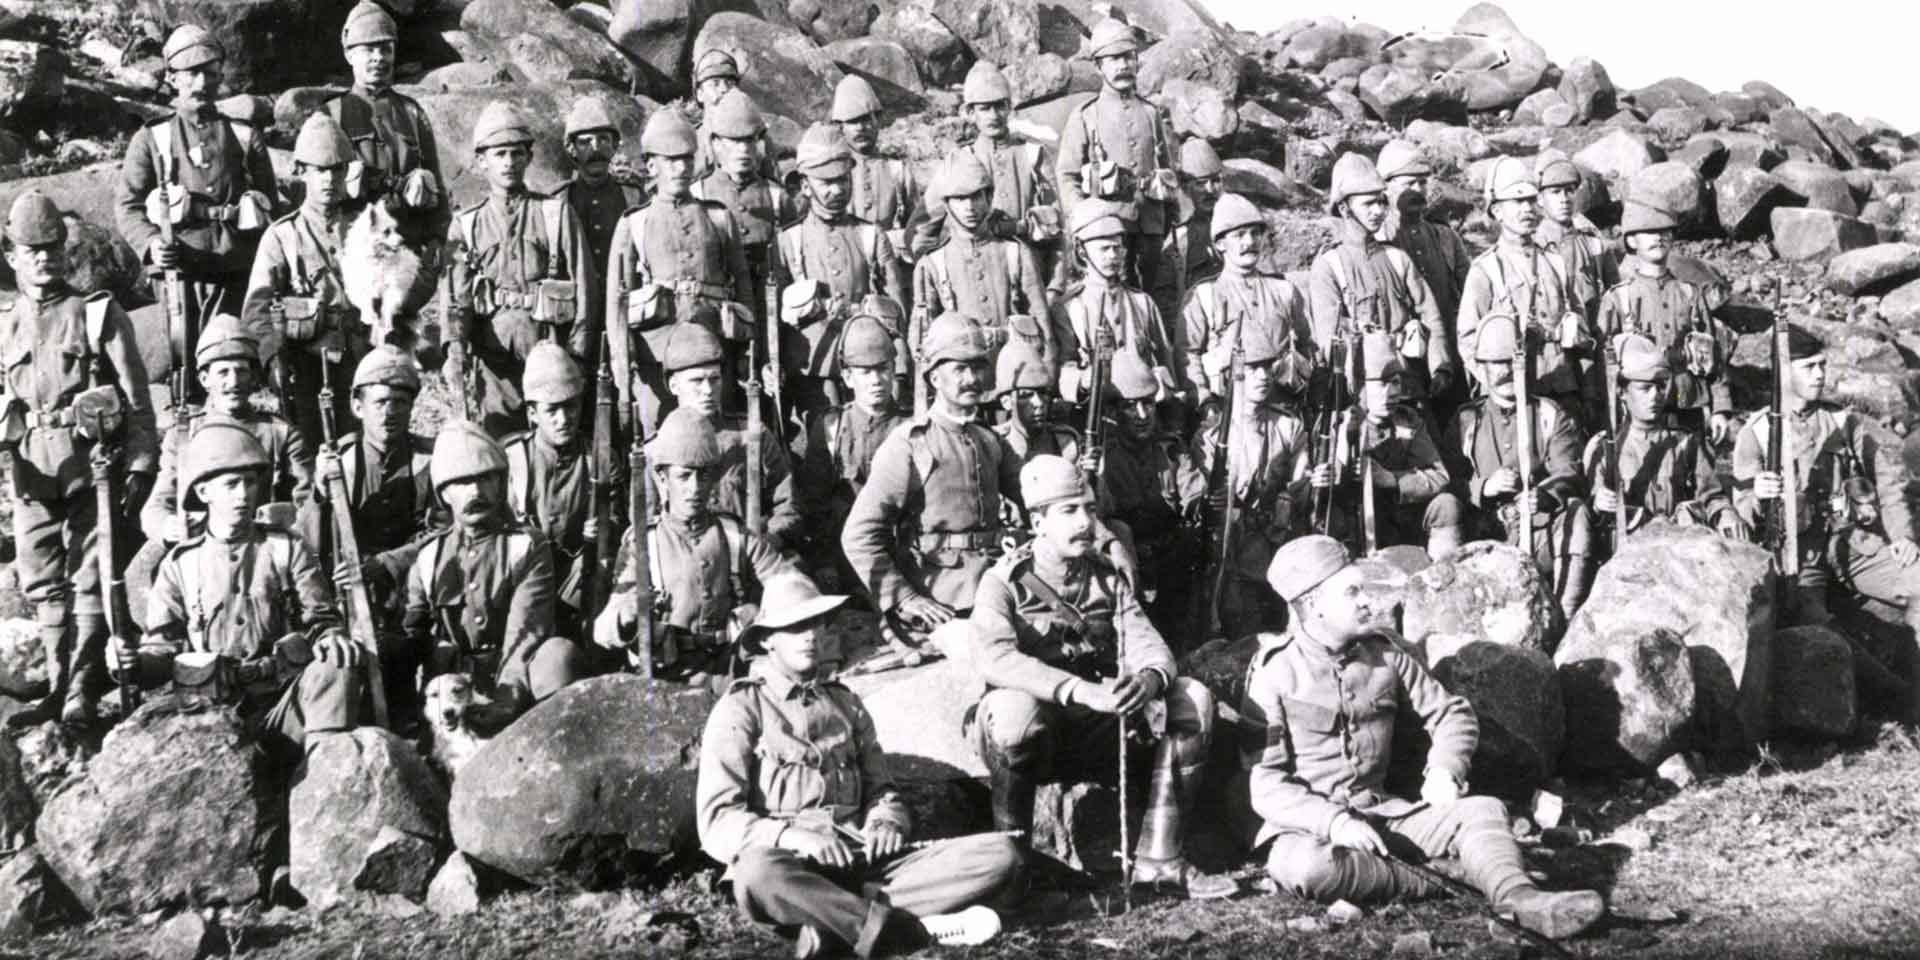 Soldiers of The Cameronians (Scottish Rifles) in South Africa, c1901